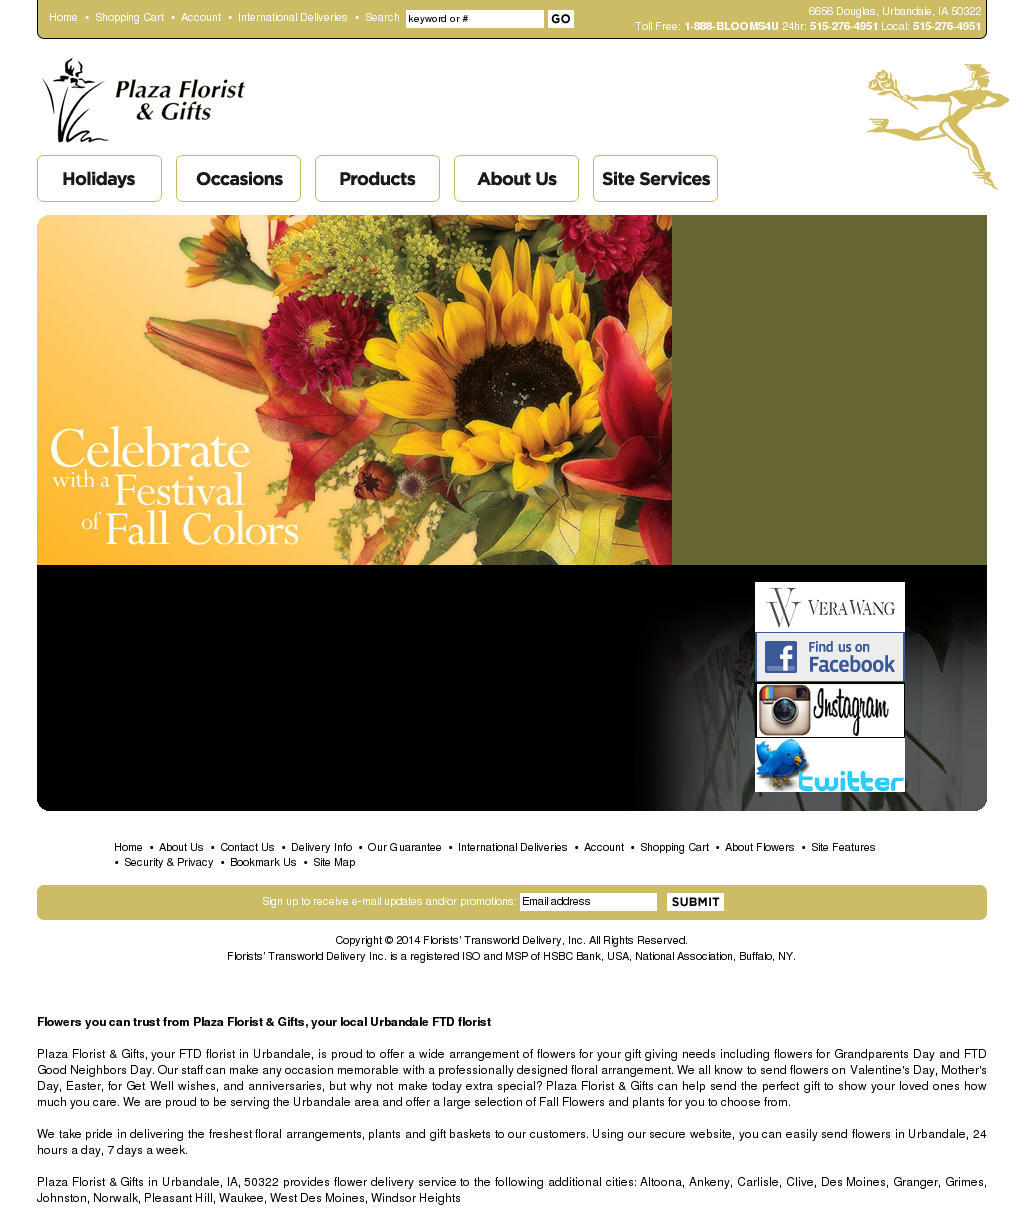 Plaza Florist And Gifts Competitors, Revenue and Employees - Owler Company Profile